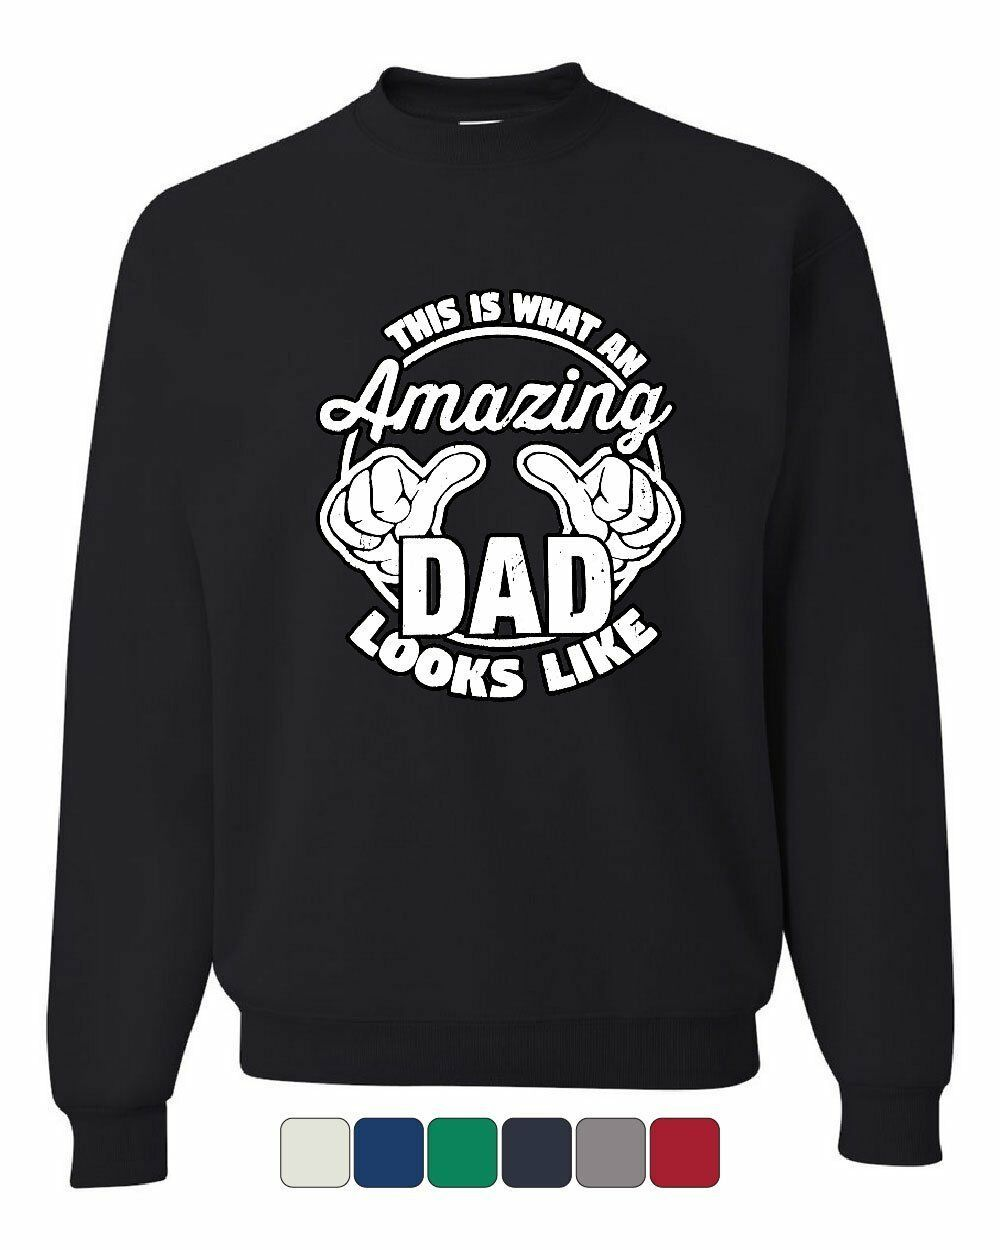 Primary image for This is What an Amazing Dad Looks Like Sweatshirt Father`s Day Gift